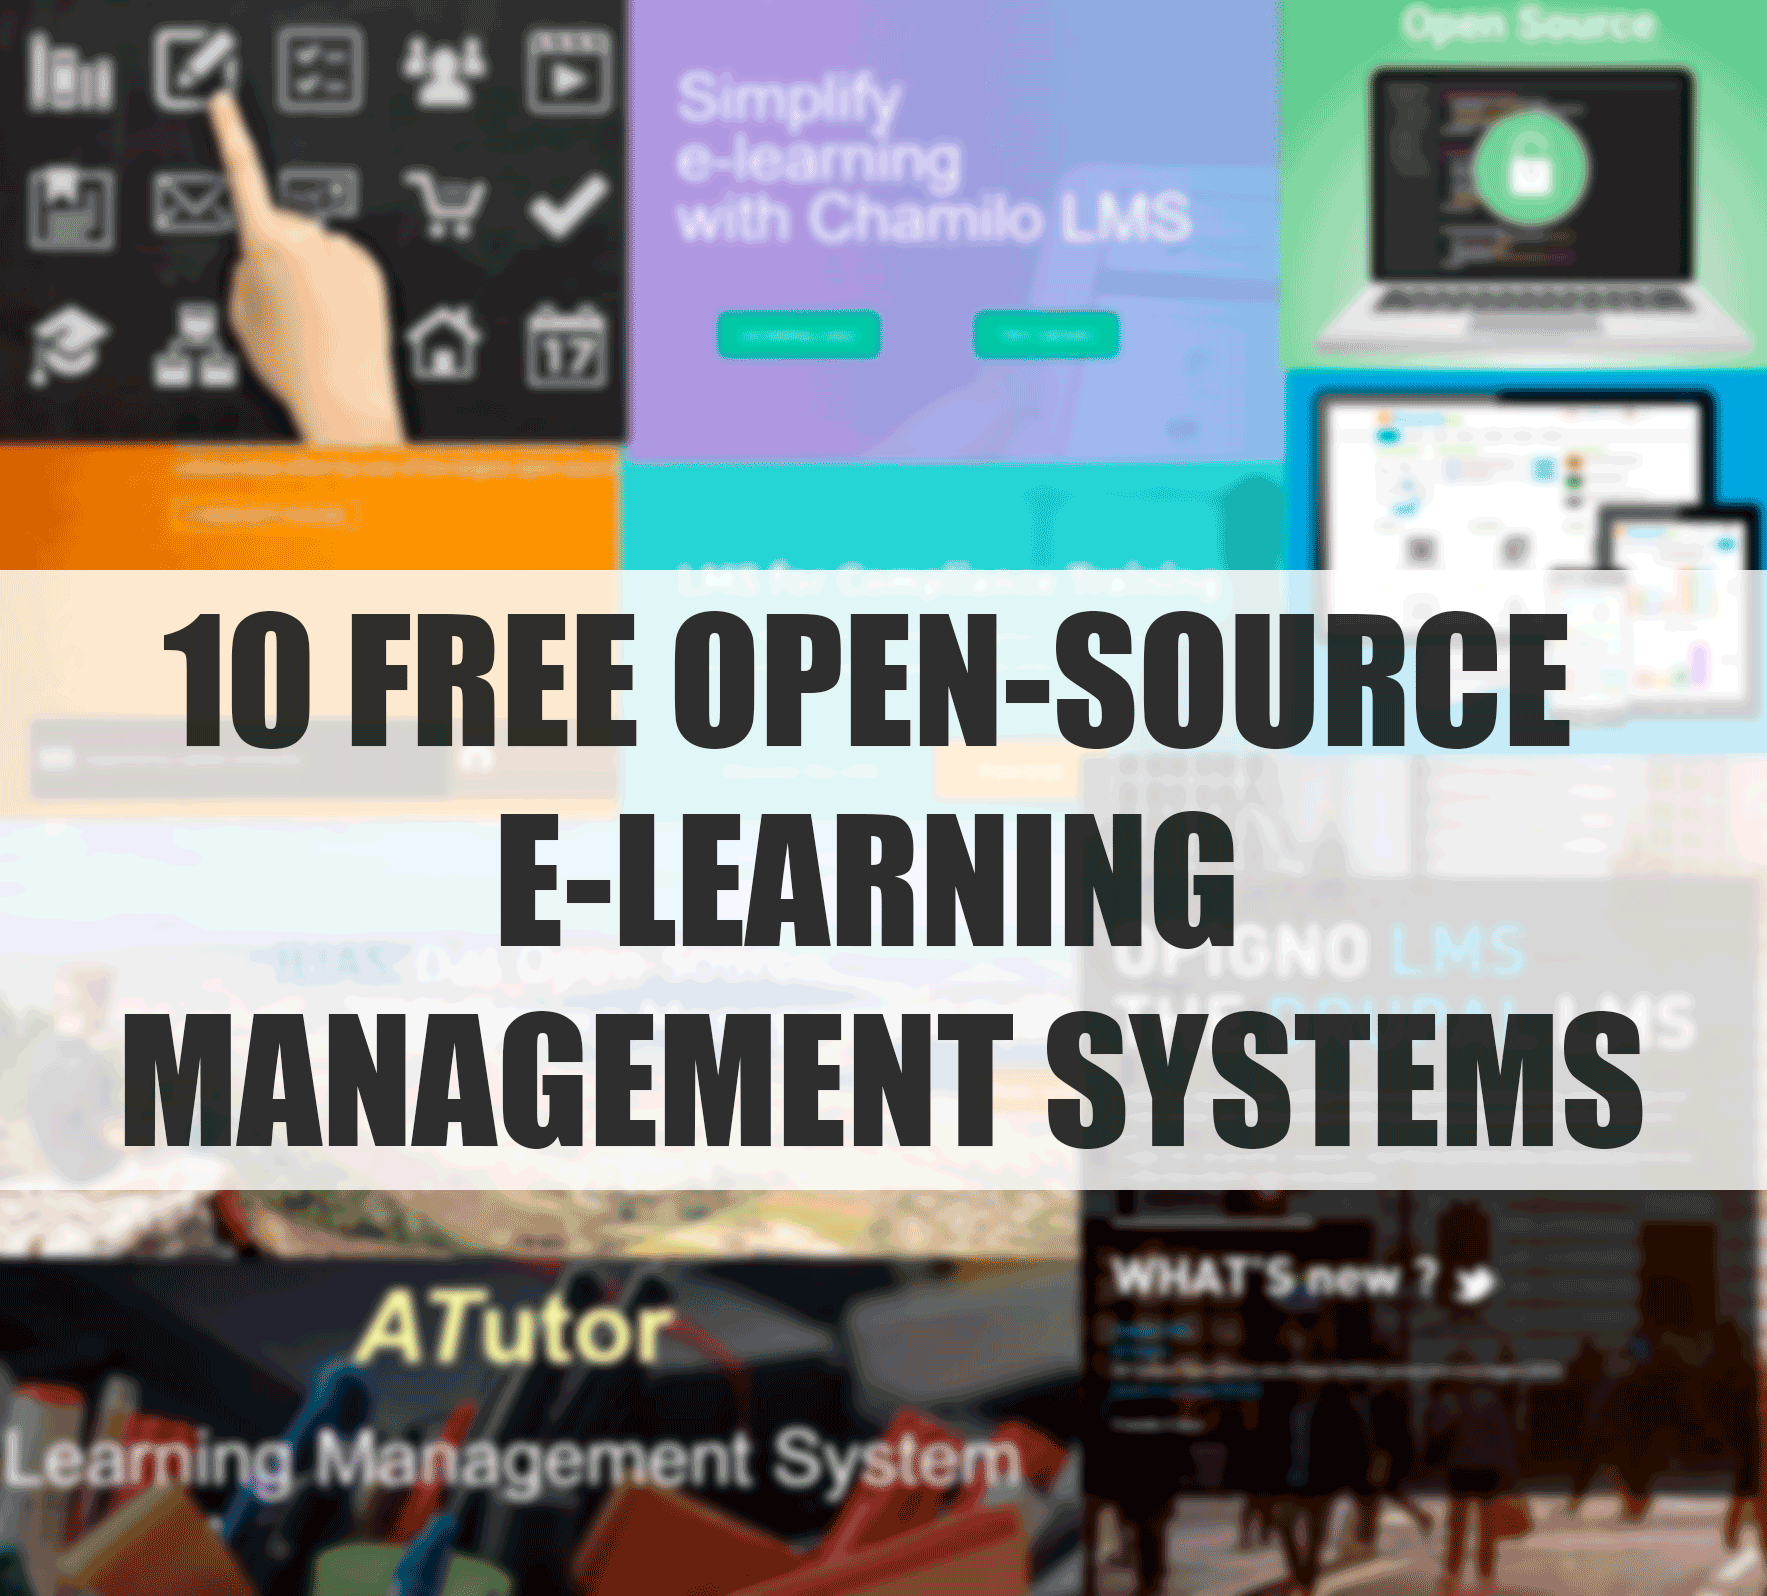 10 OPEN-SOURCE E-LEARNING MANAGEMENT SYSTEMS